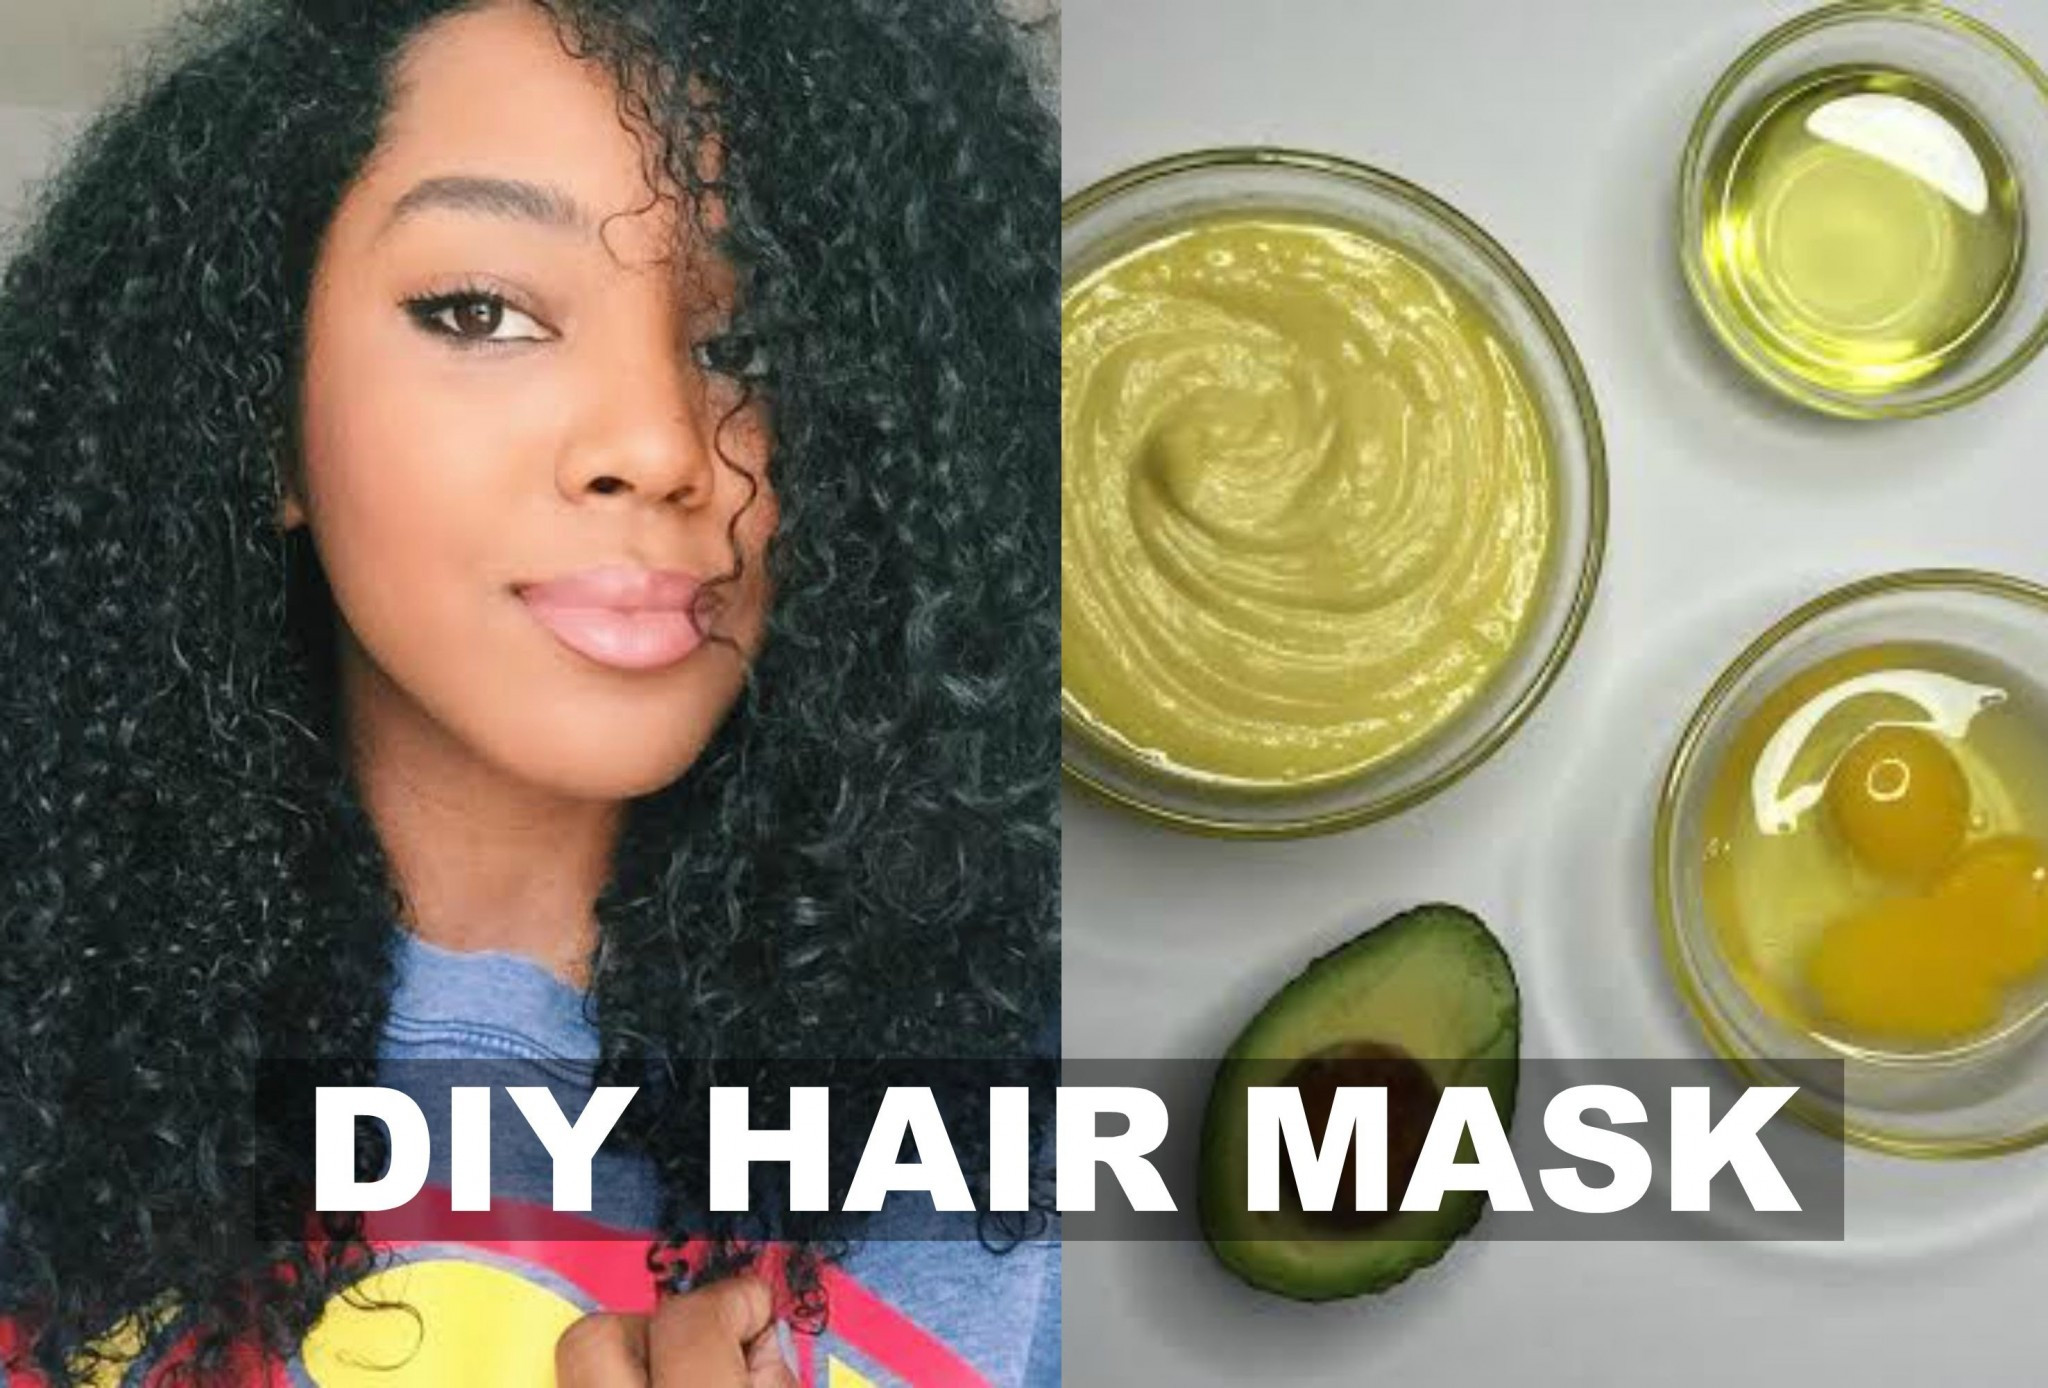 Best ideas about Best DIY Hair Mask . Save or Pin DIY Hair Mask With Organic Mayo And Avocado For Natural Now.